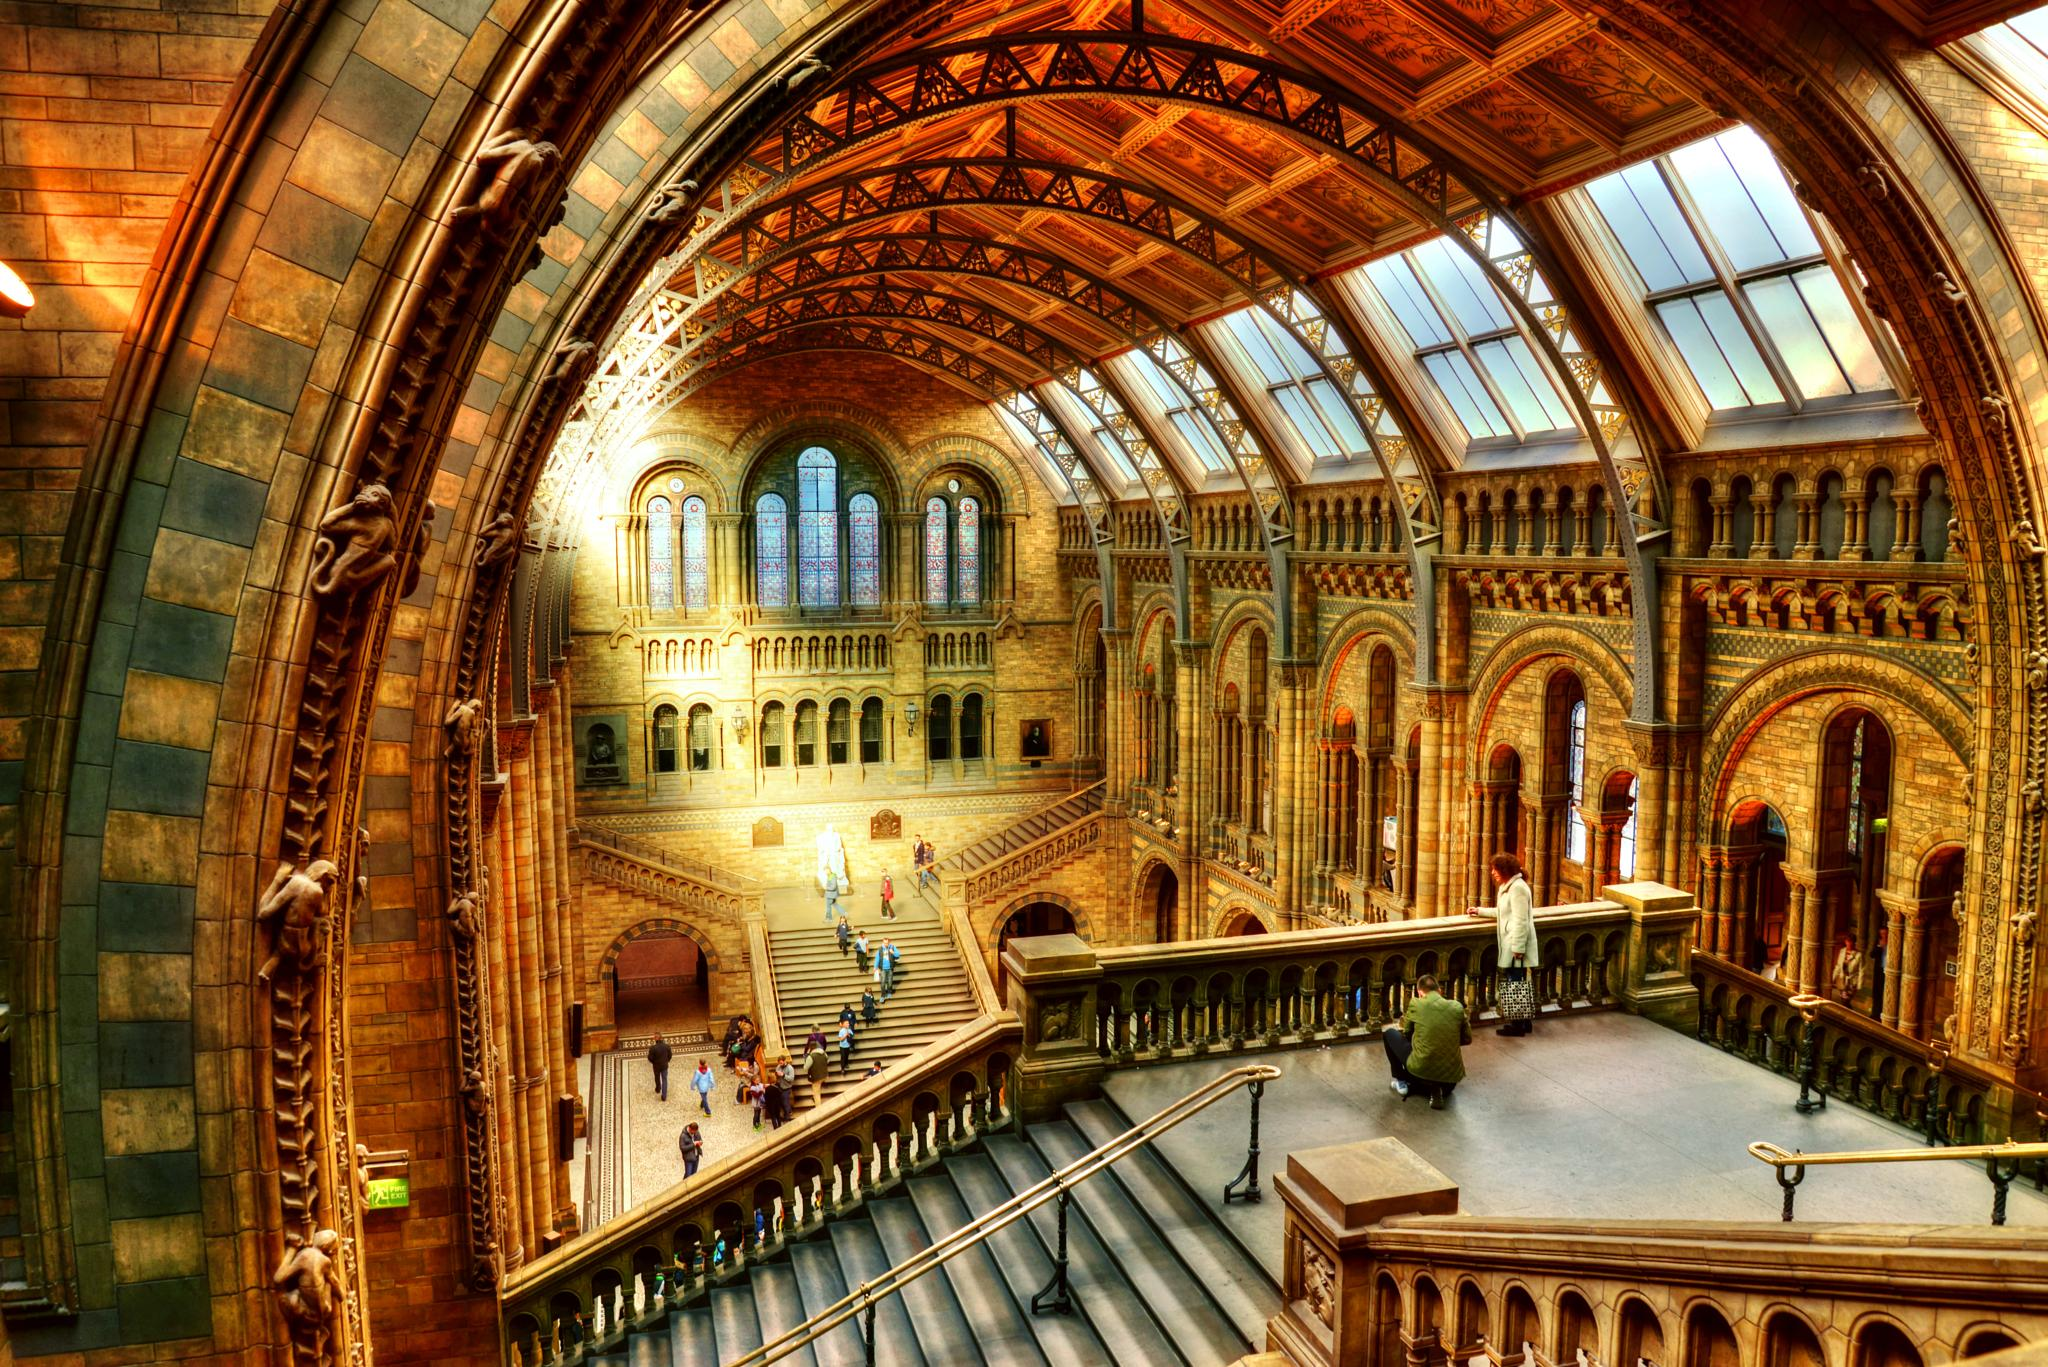 Natural History Museum by Piotr Owczarzak